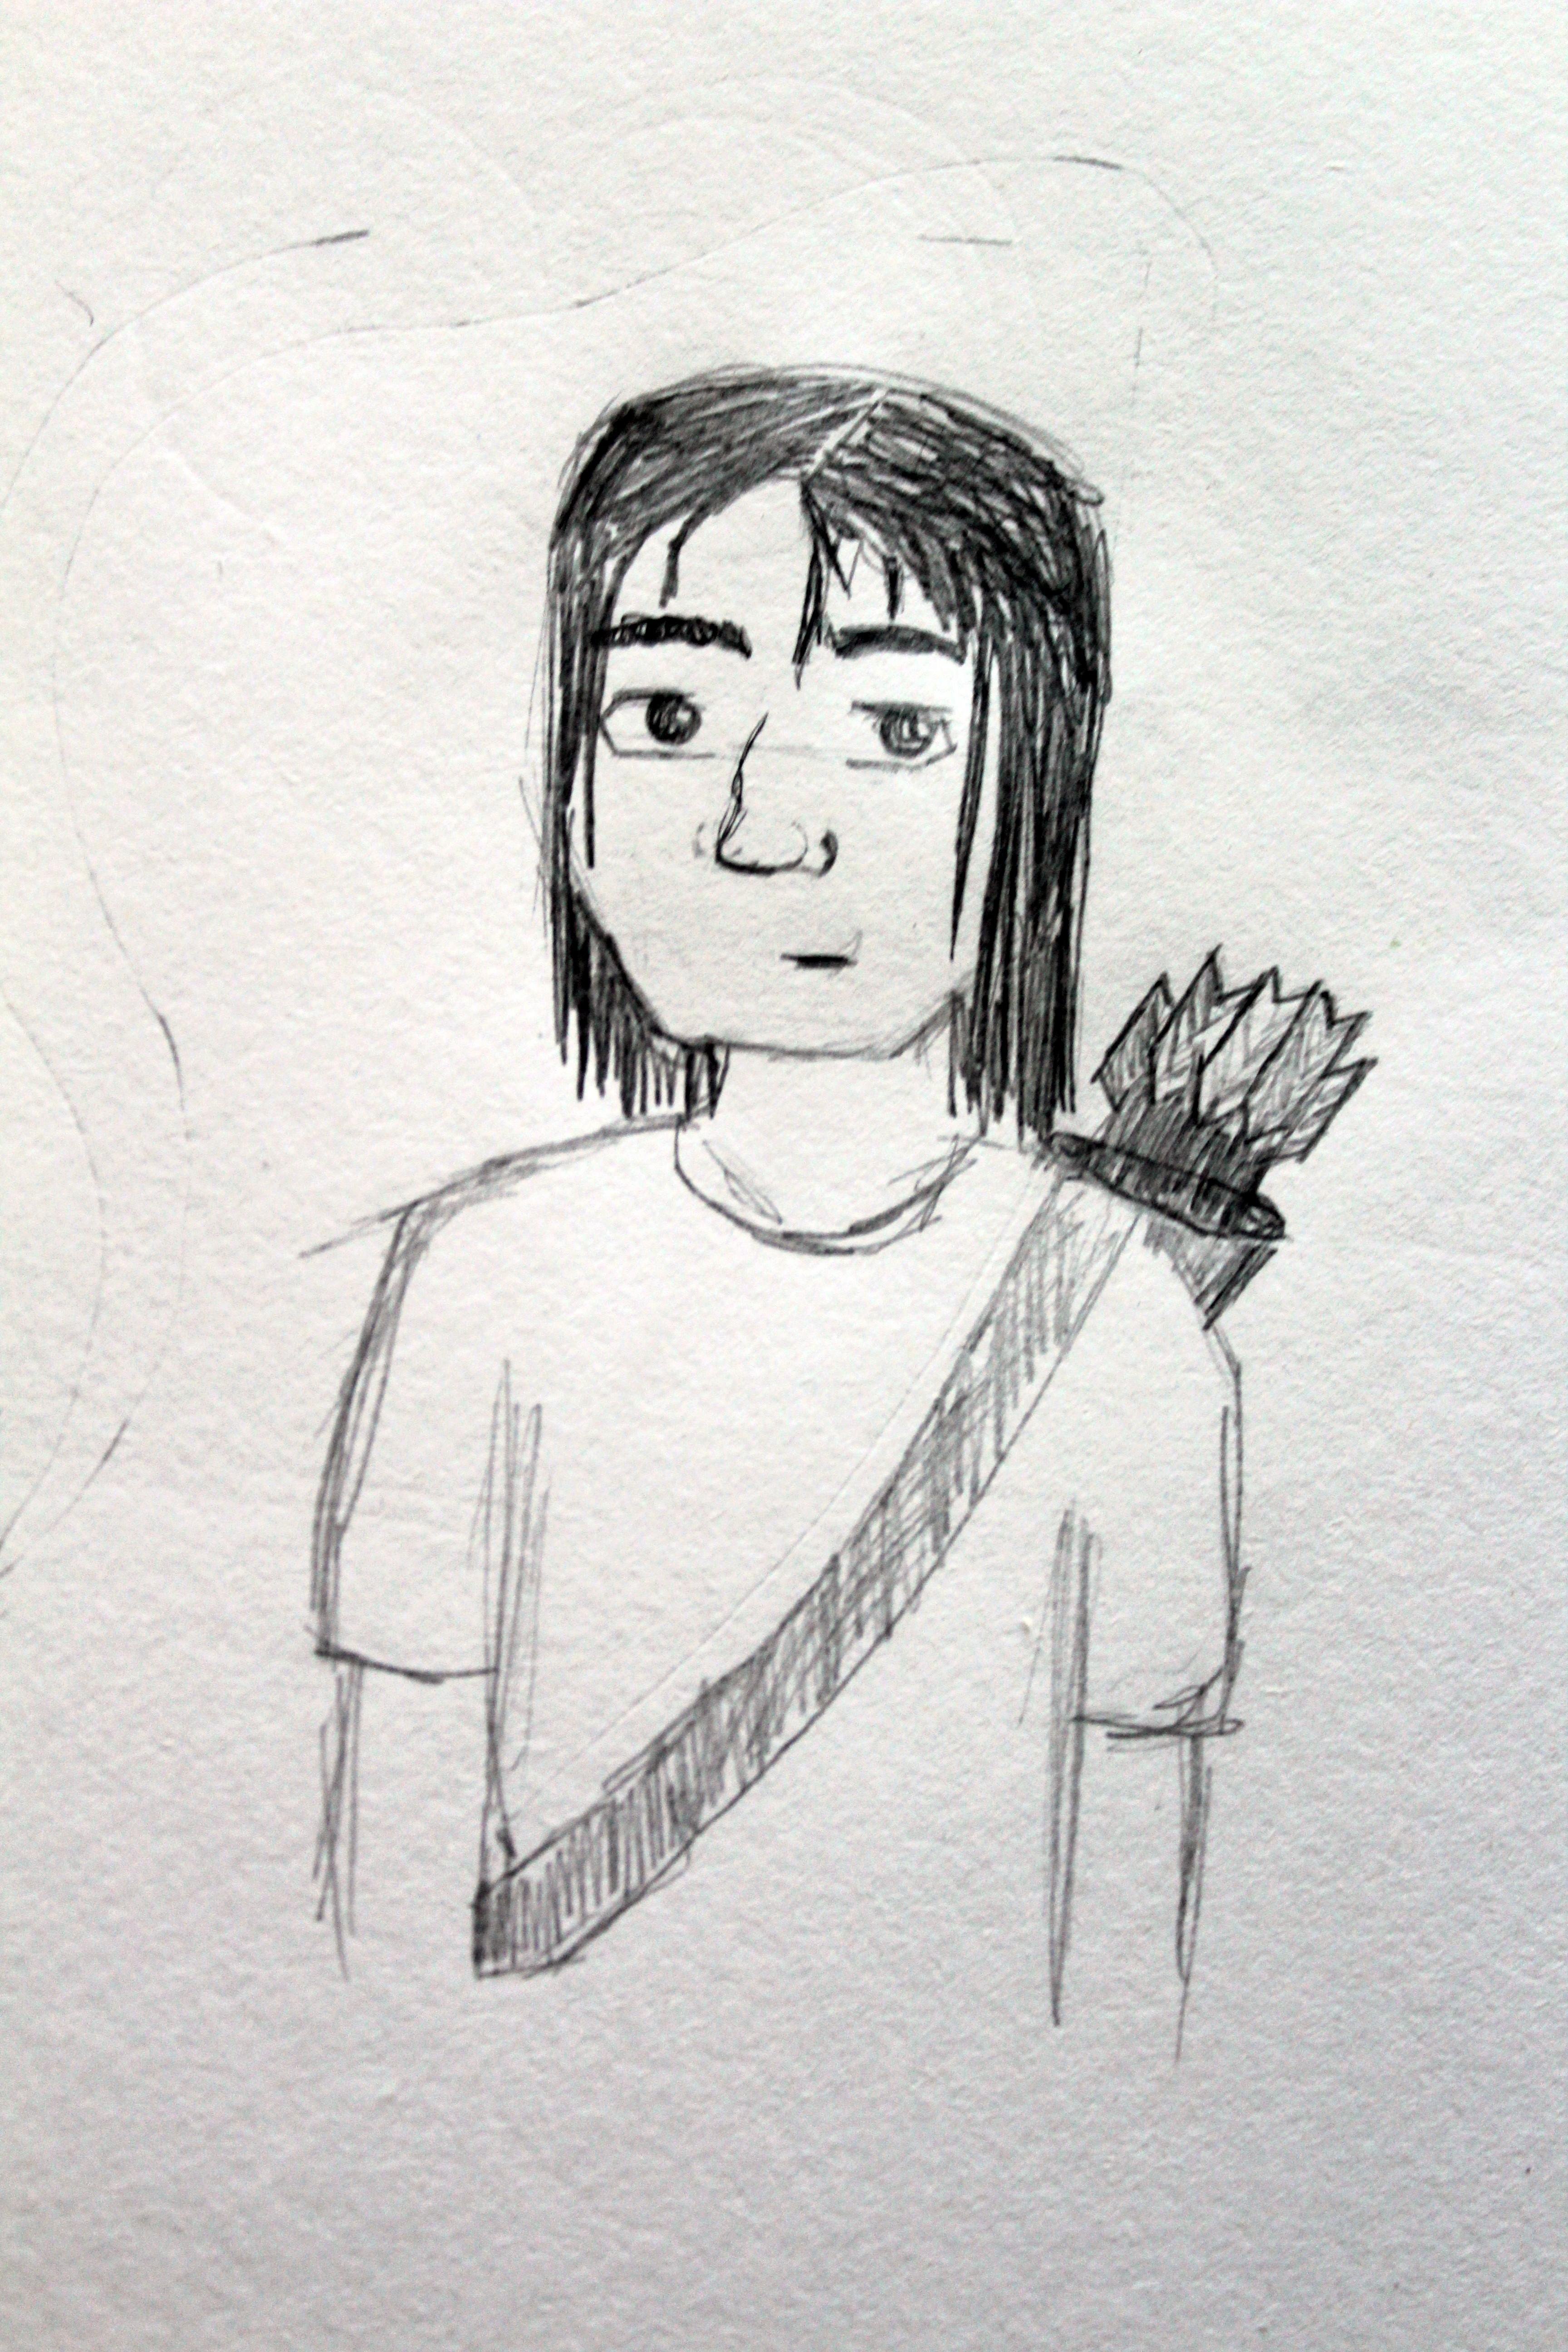 Here's your character. Sorry it looks so bad. I'm not a great artist.